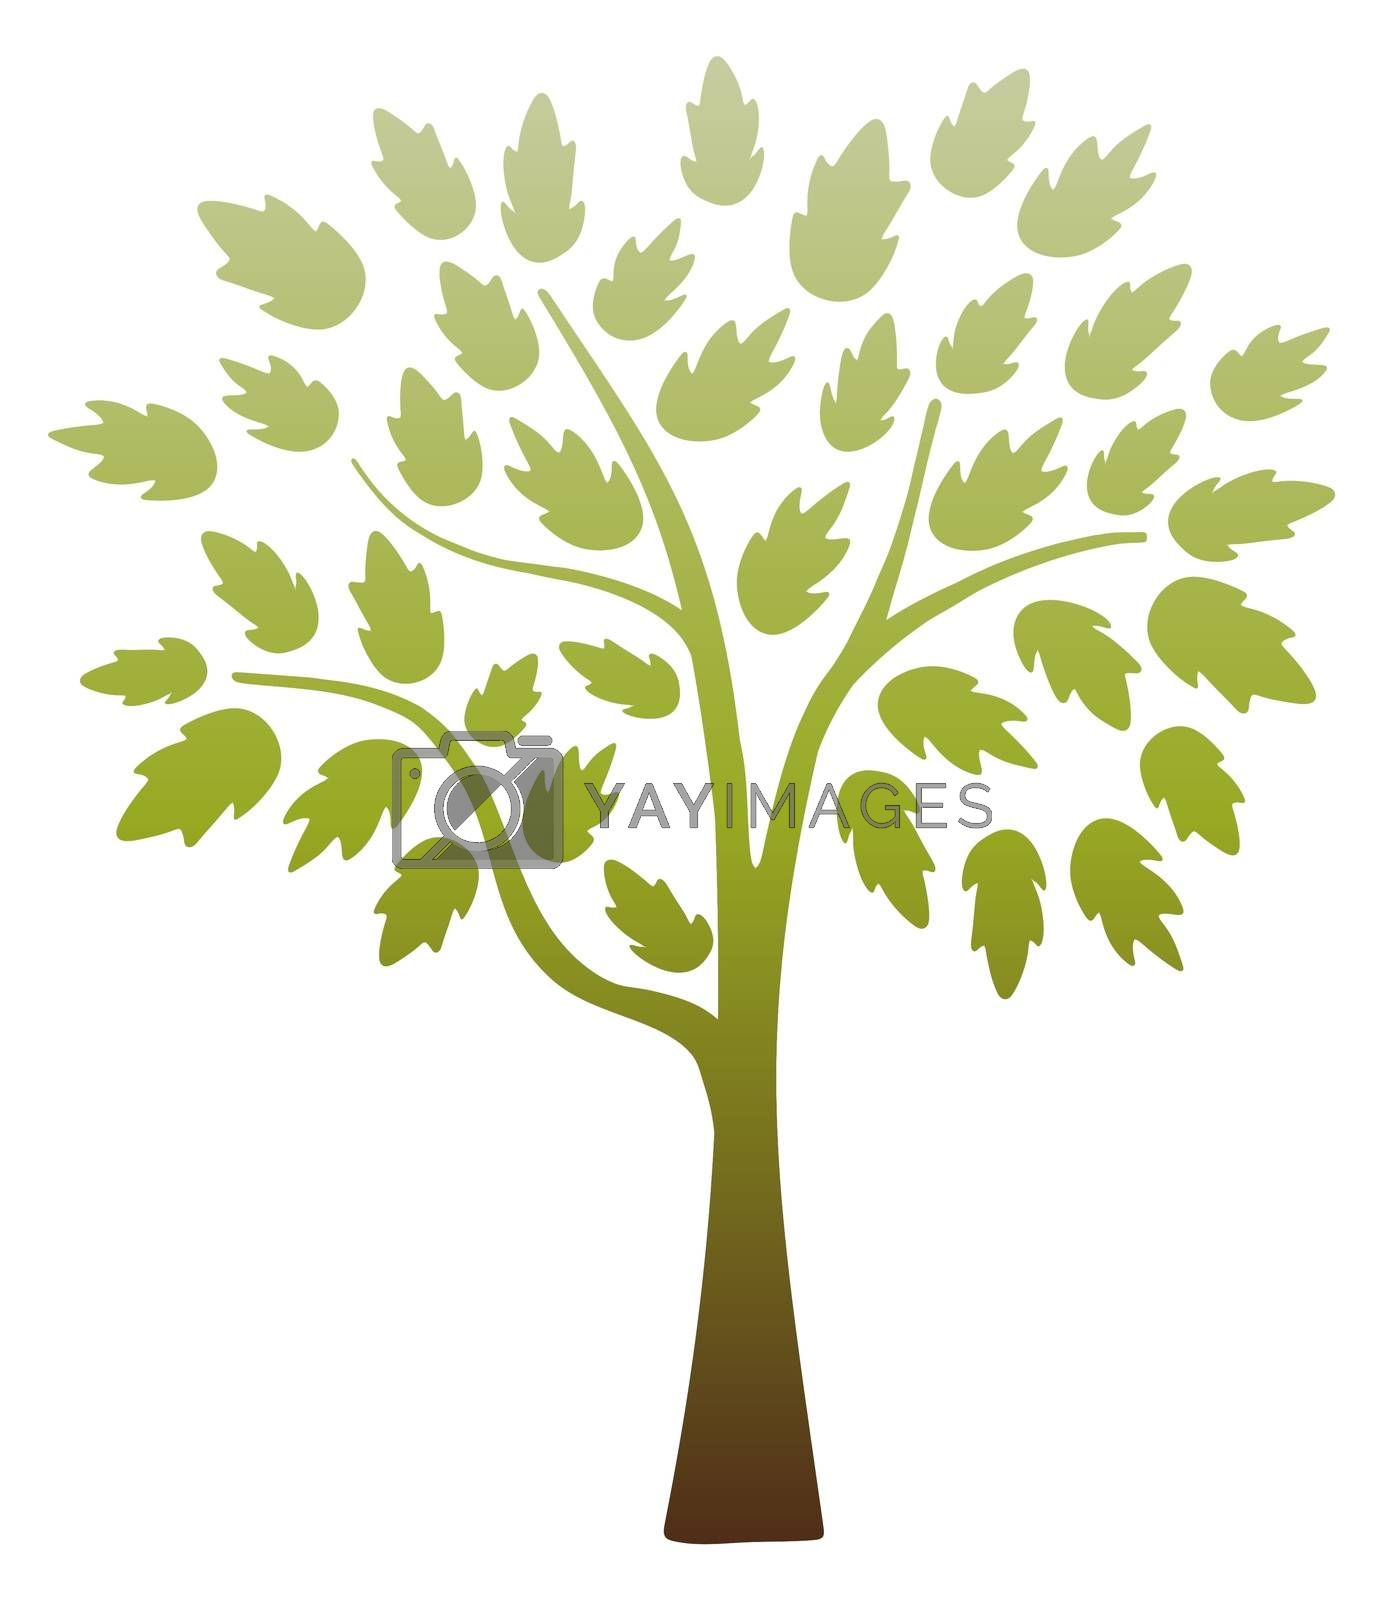 Illustration of an isolated brown and green tree